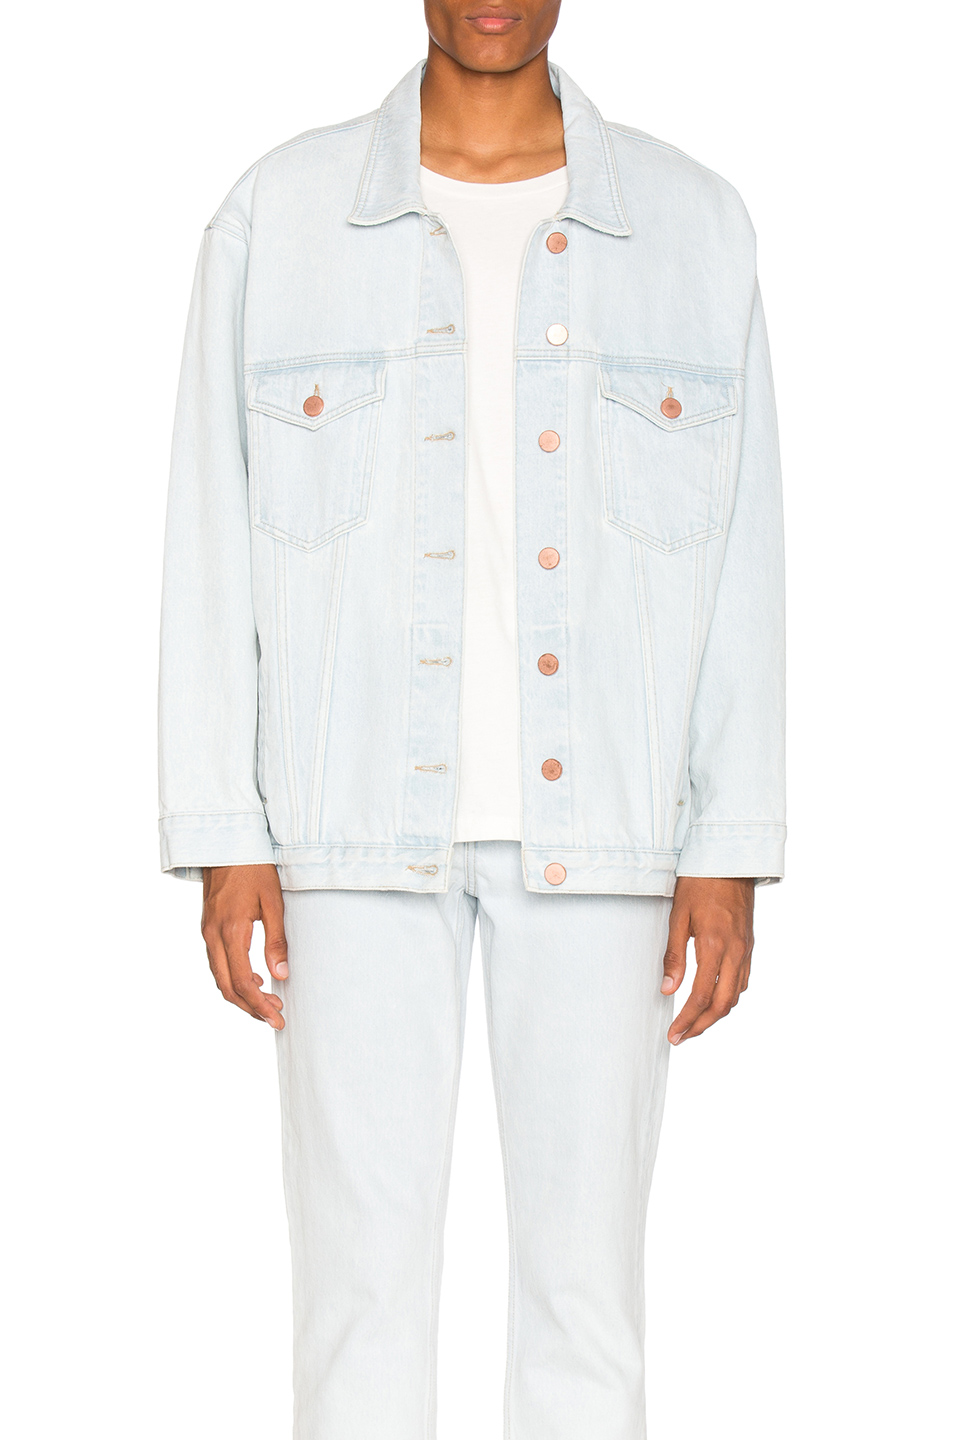 Martine Rose Oversized Denim Jacket in Blue